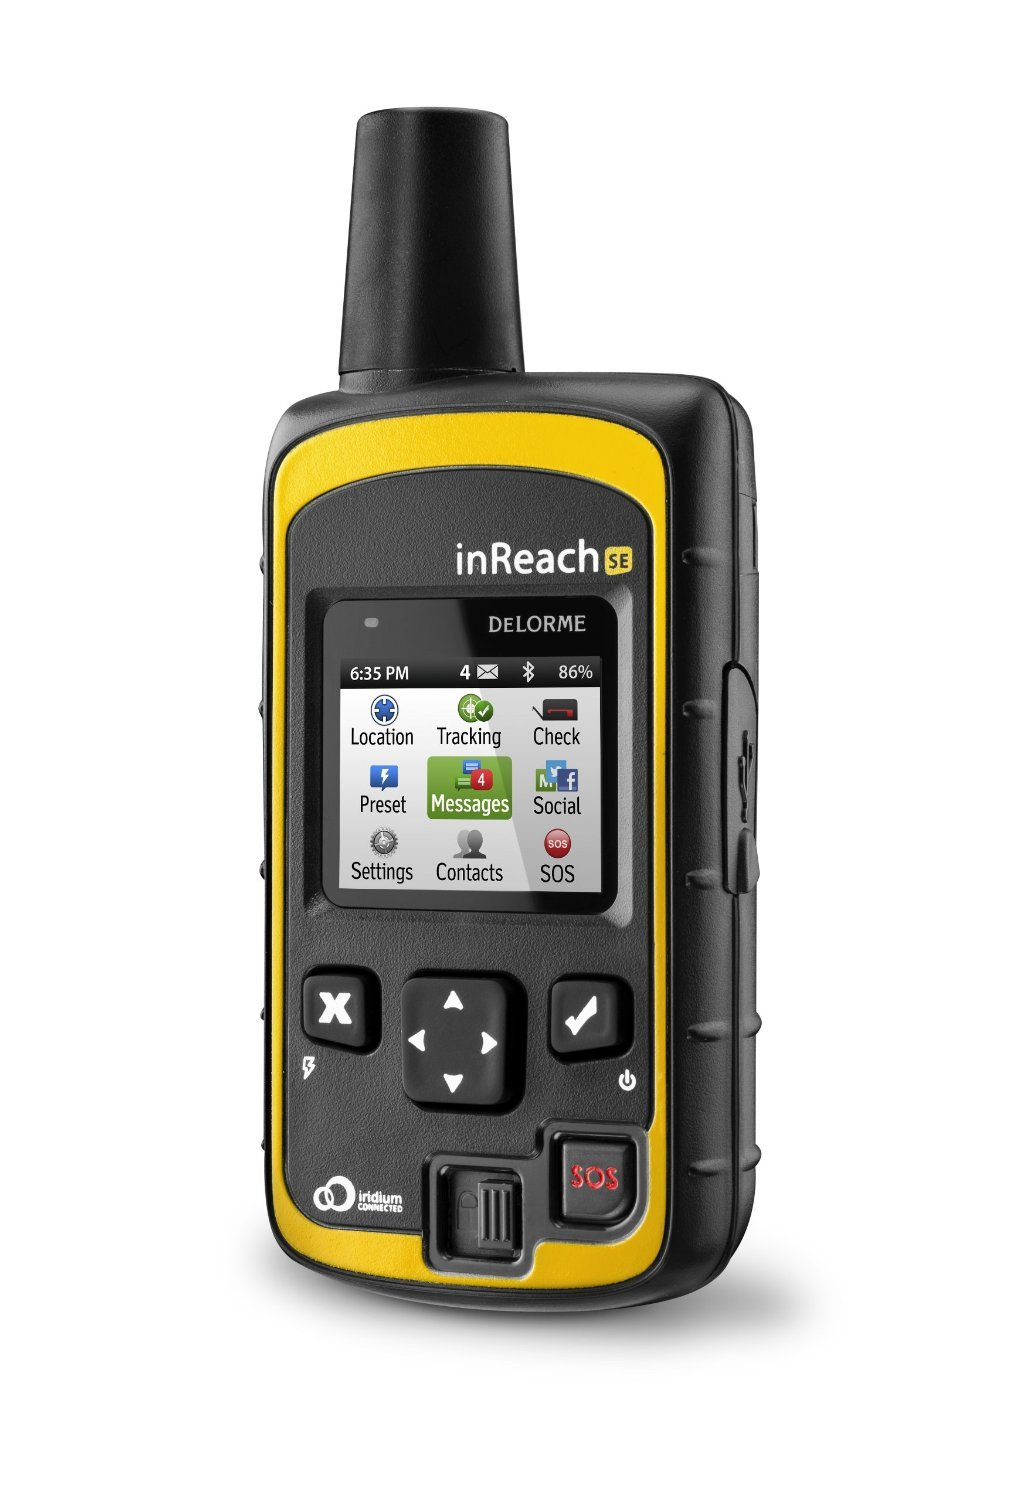 Top 7 Best Handheld GPS for International Travel - Buyer's Guide 26